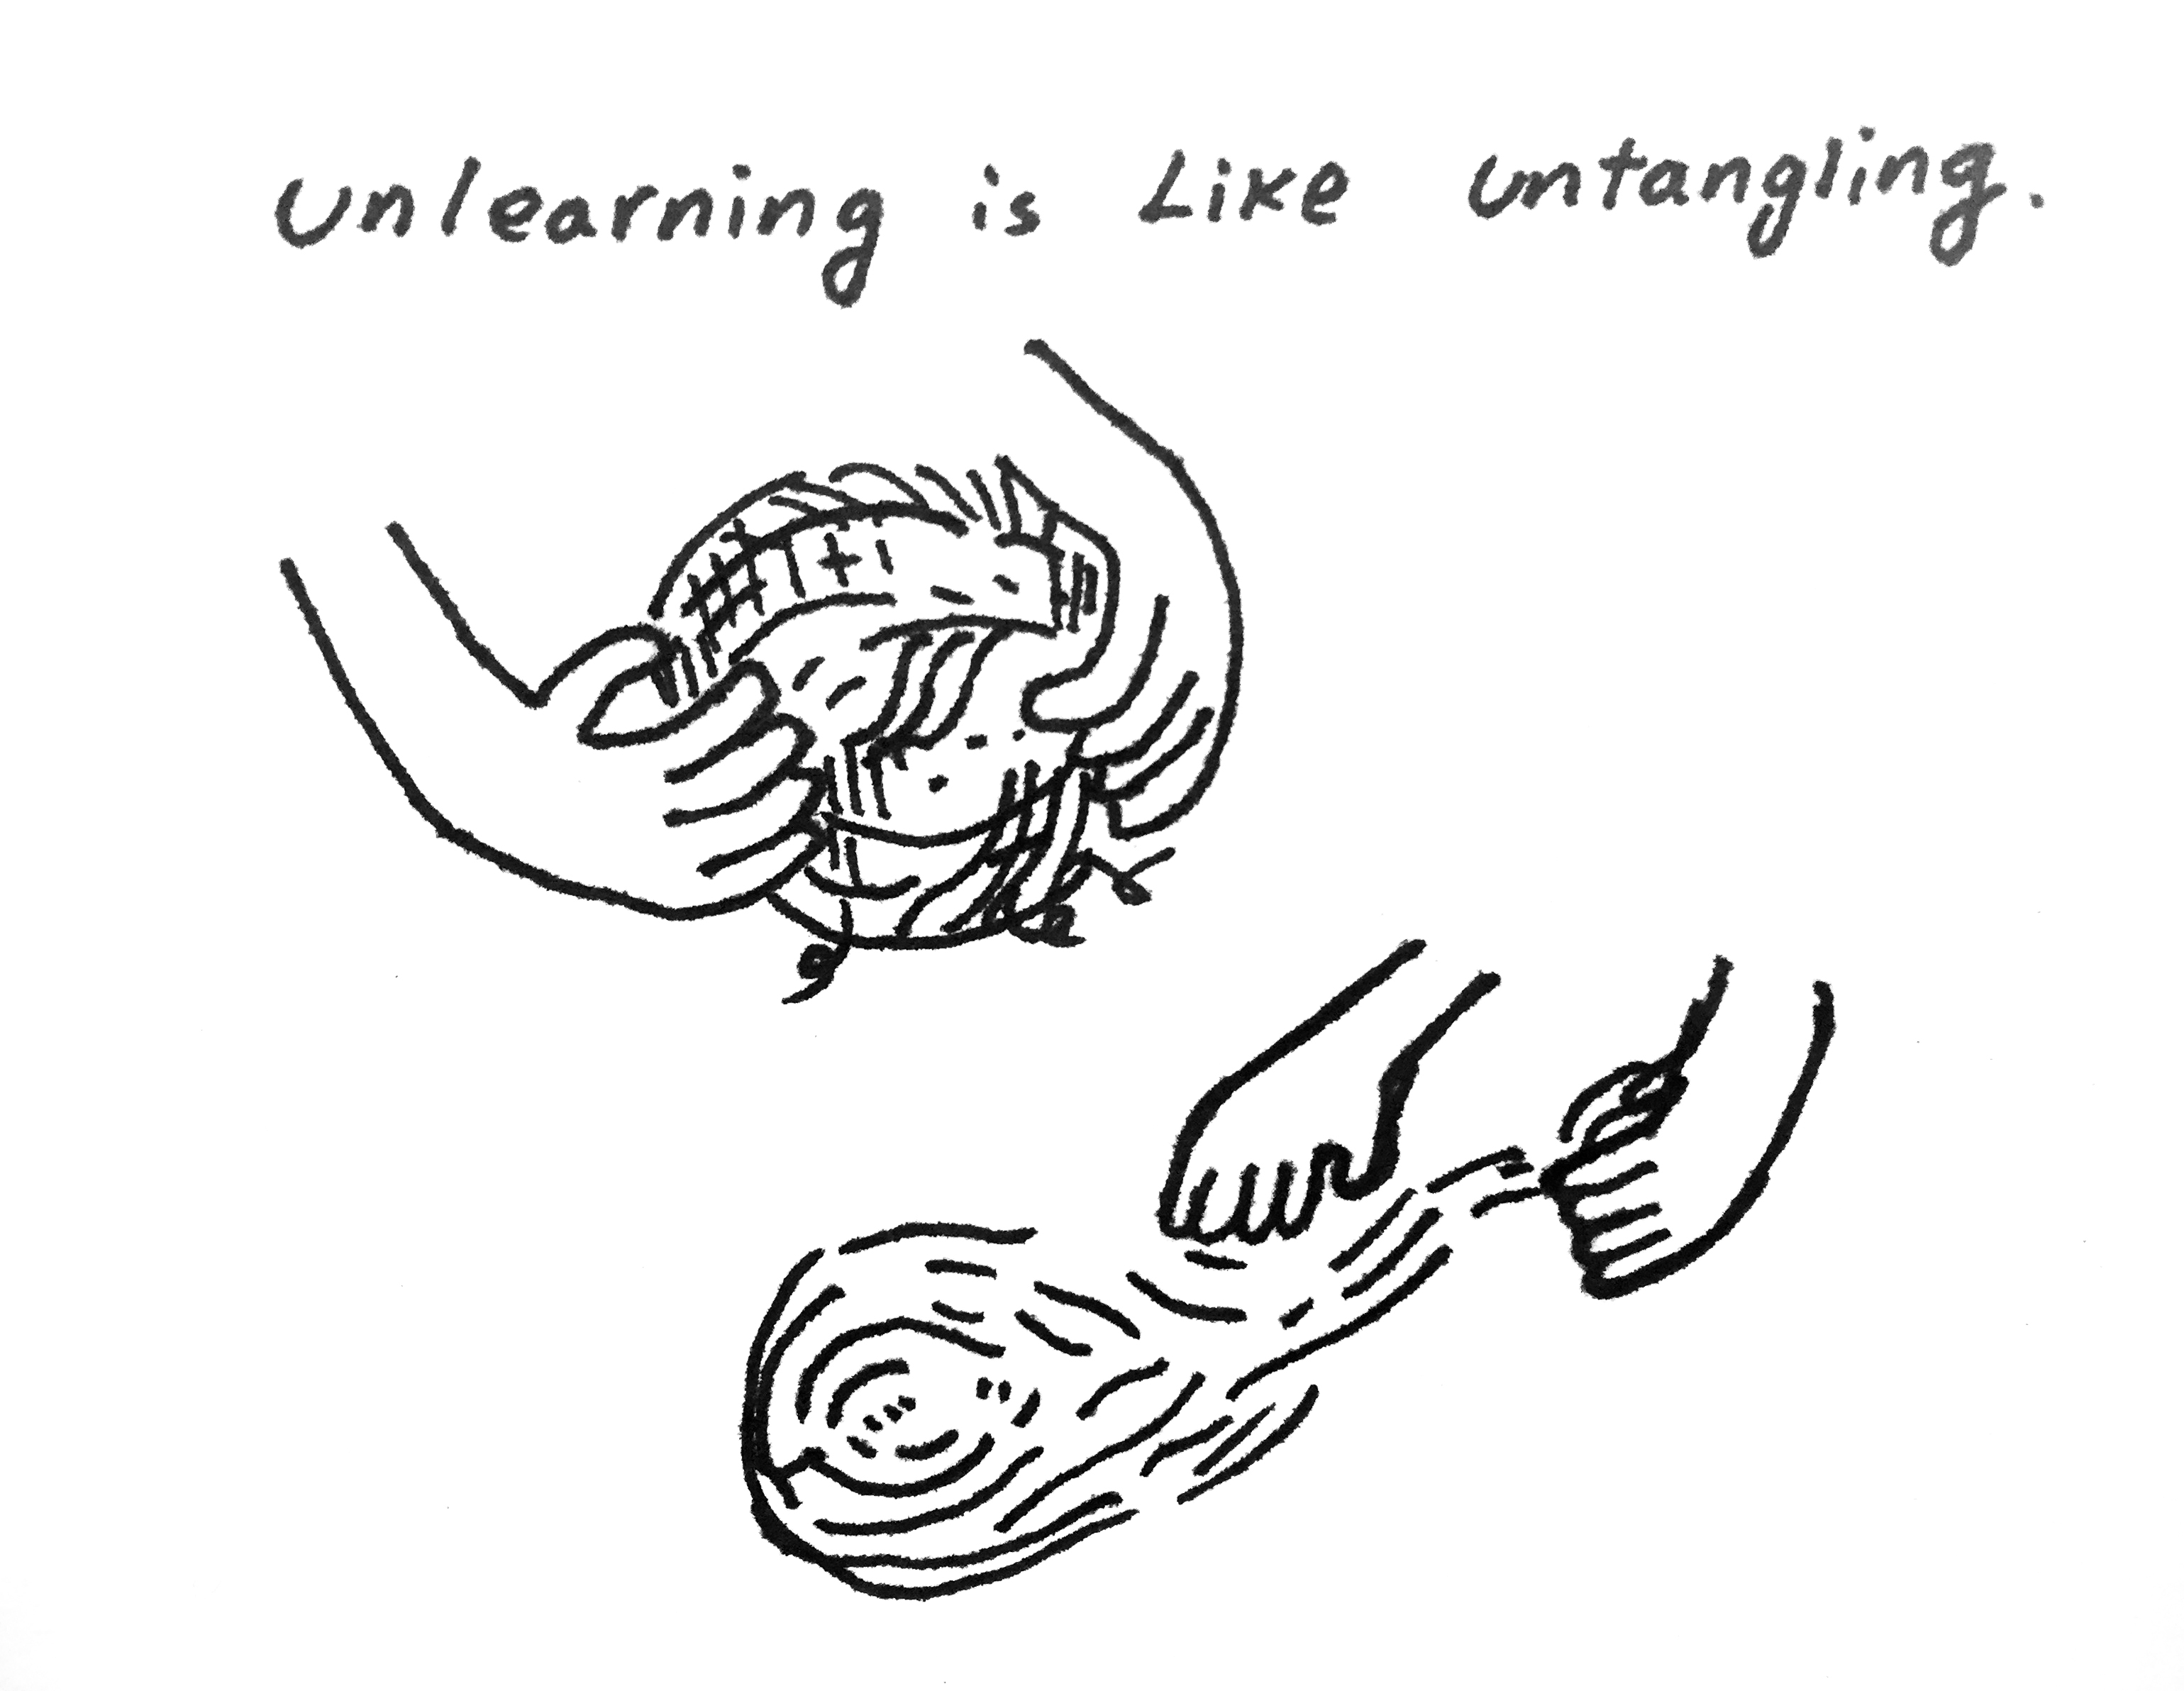 Unlearning Day- 1